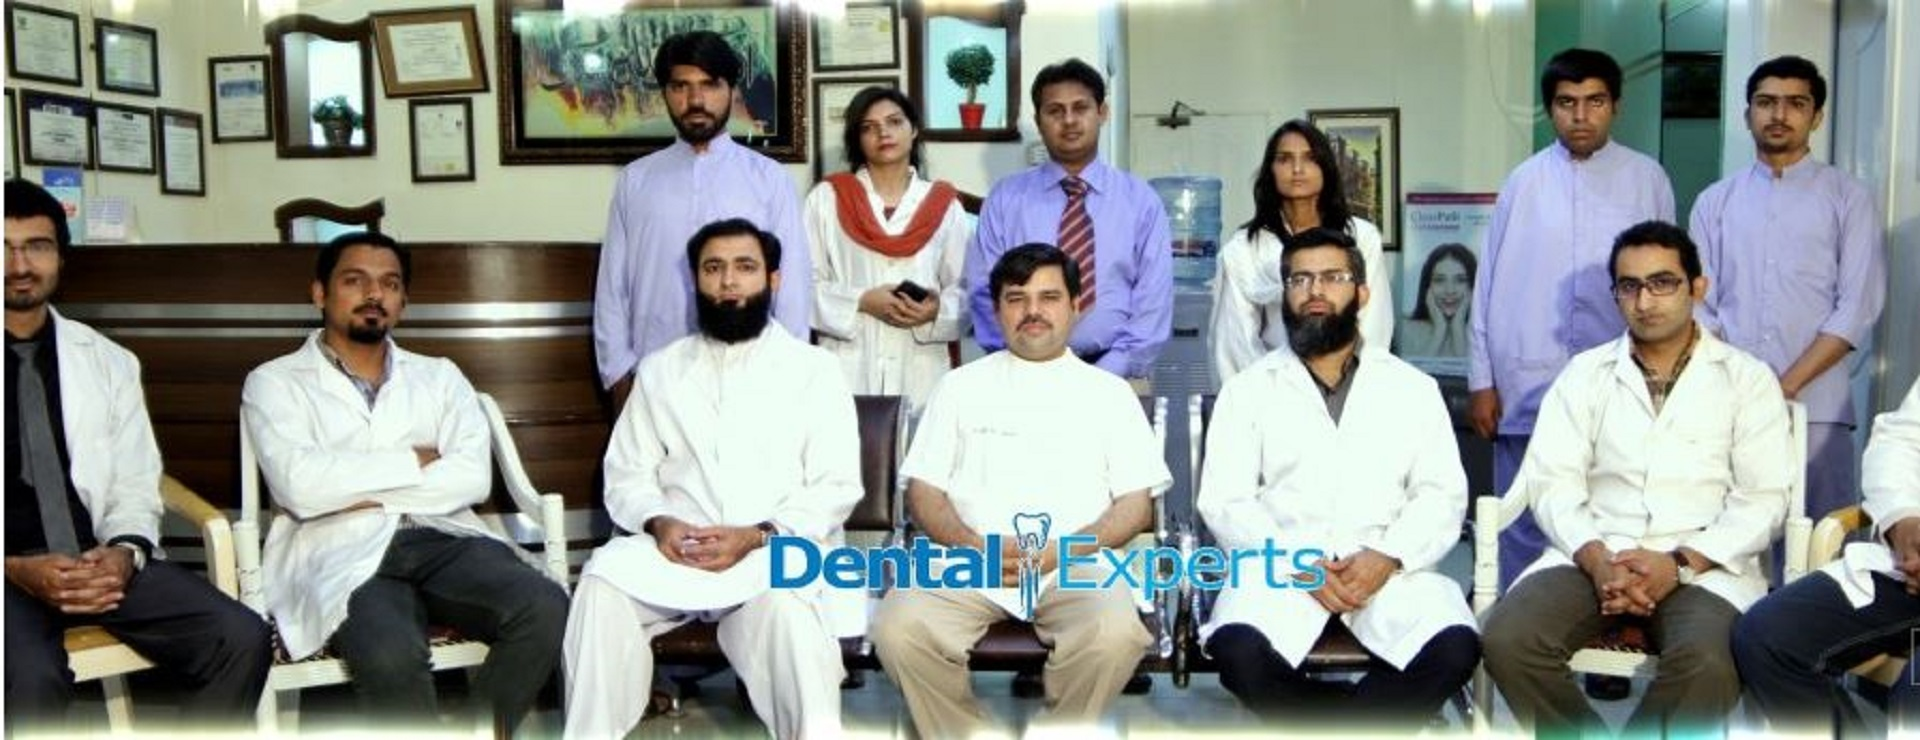 Dental experts cover